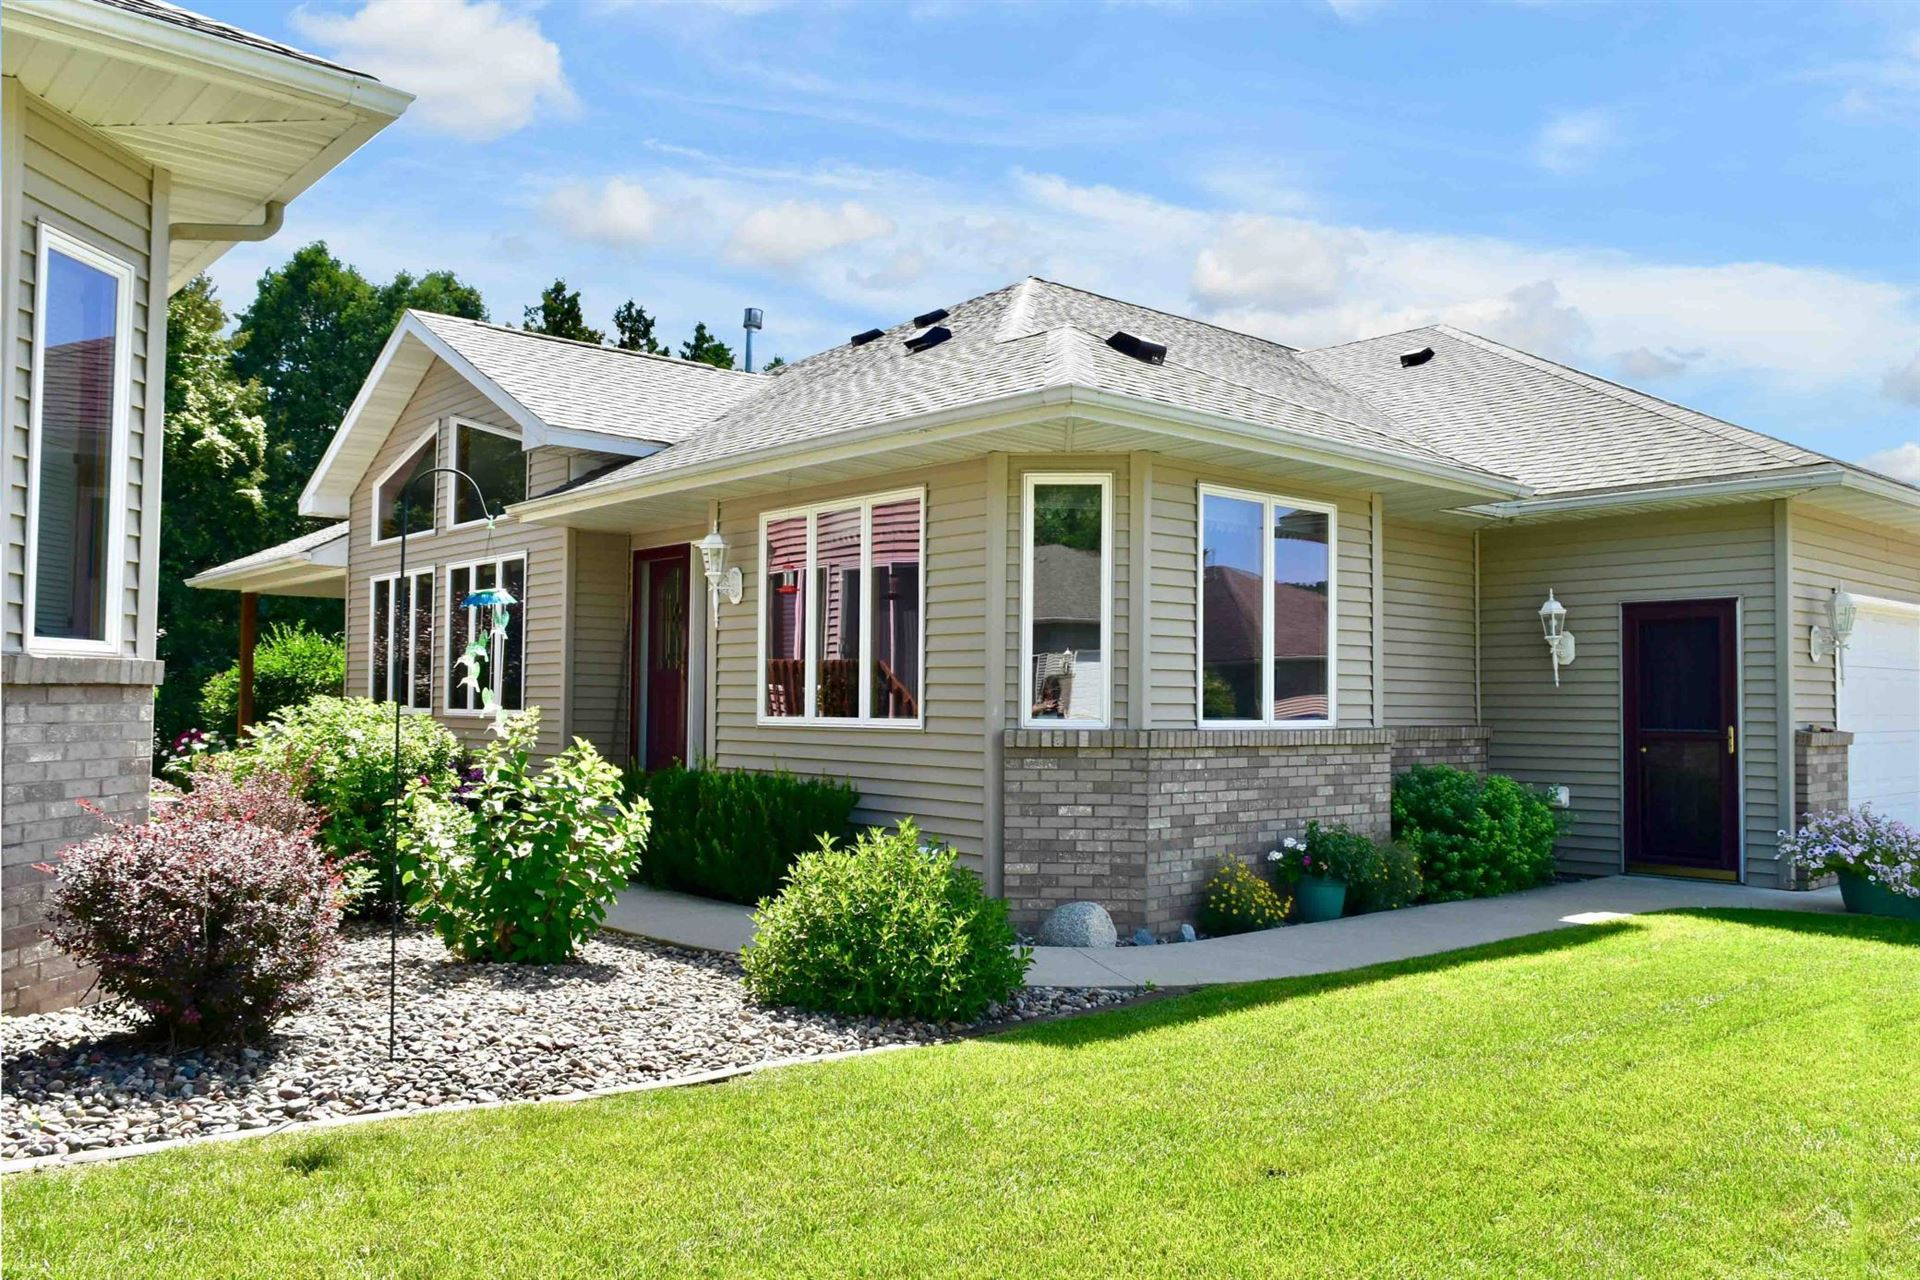 110 Whispering Lane, Winona, MN 55987 - MLS#: 5632473